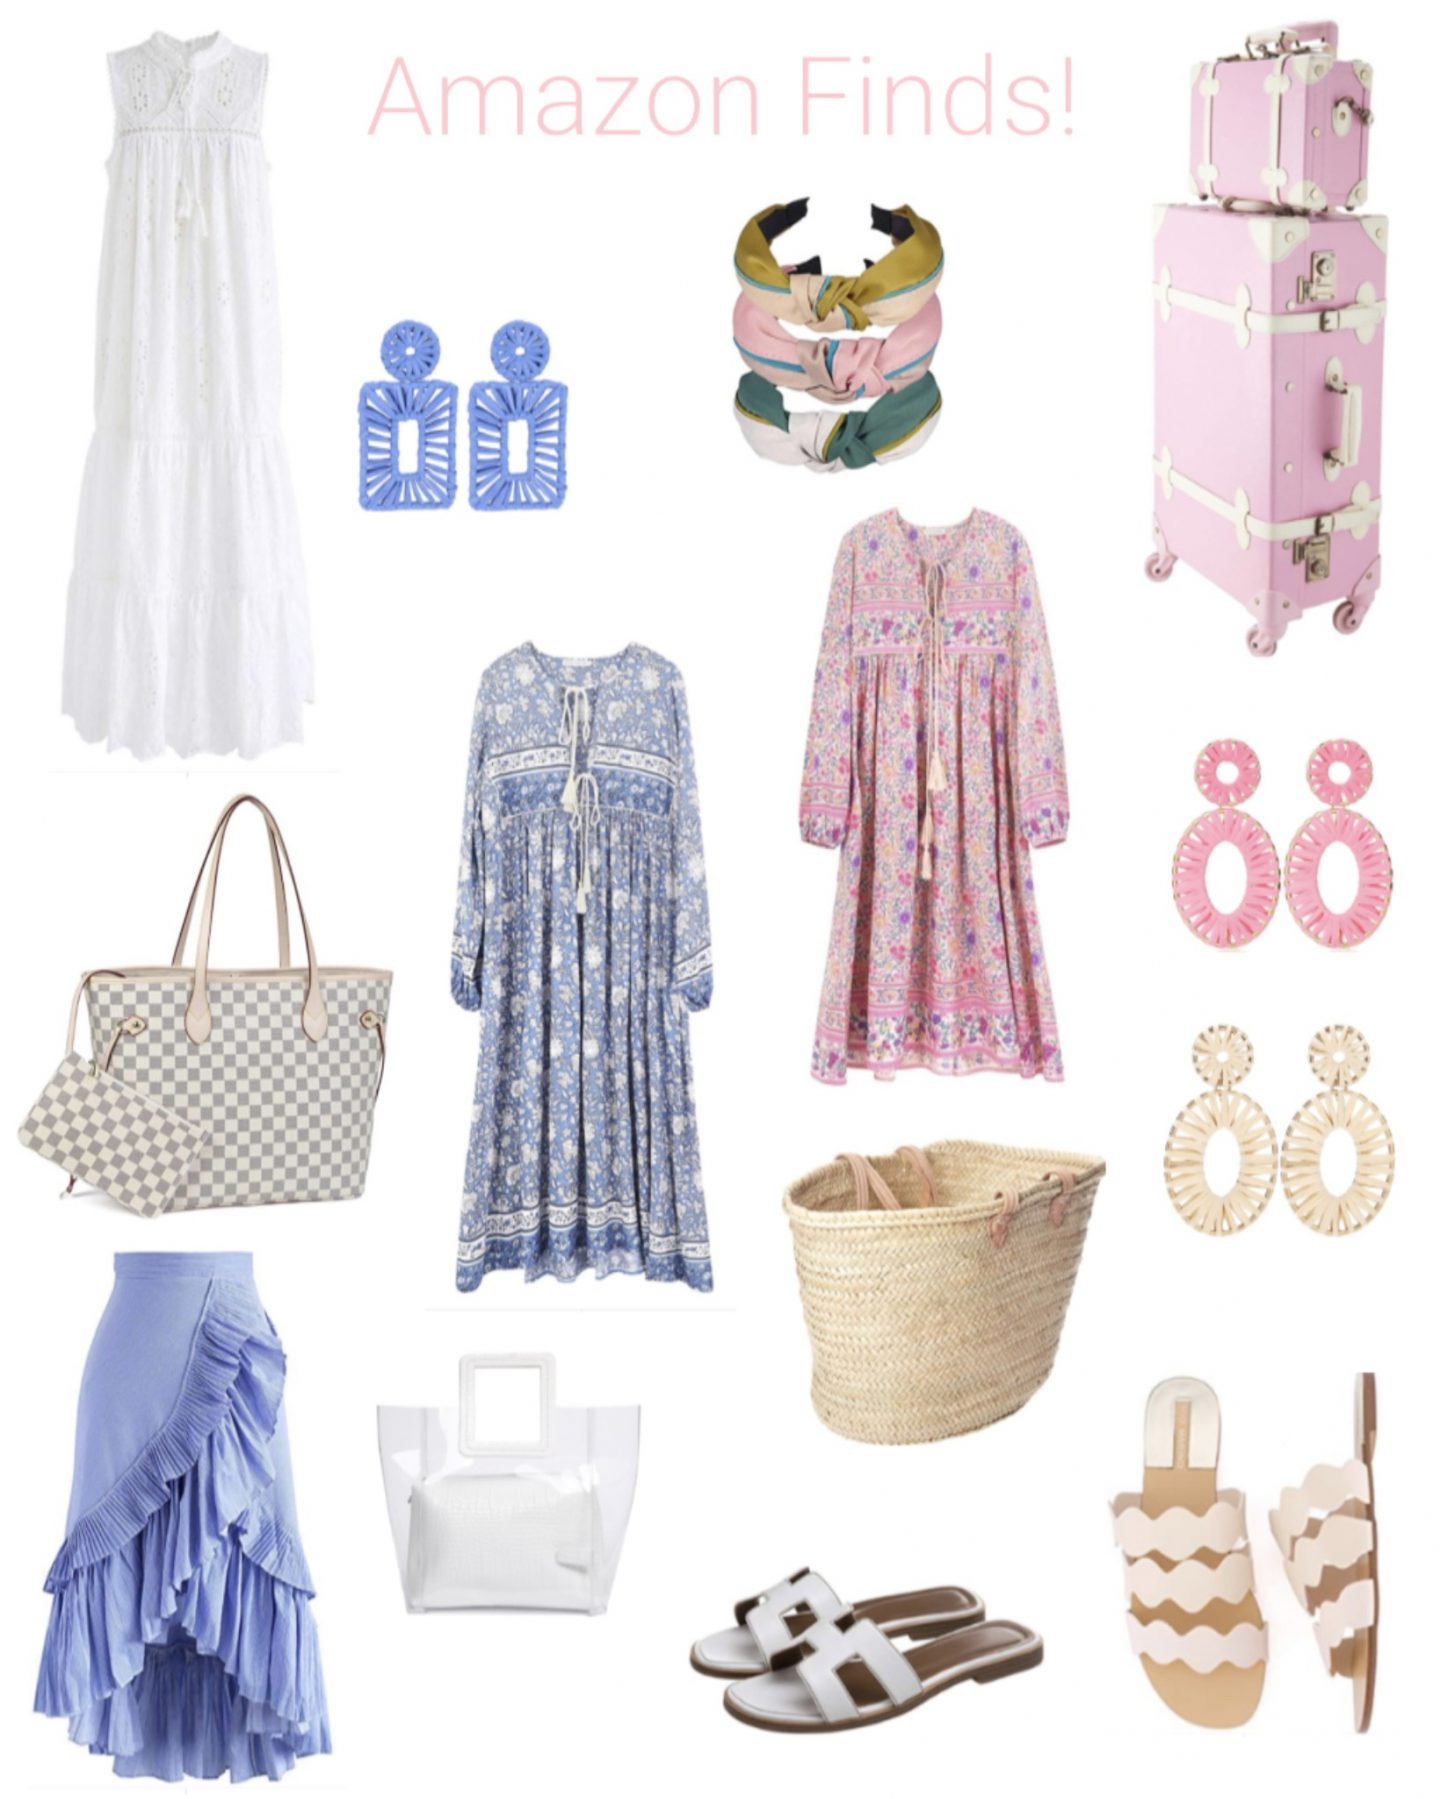 summer dress / travel luggage / summer bag / summer sandals